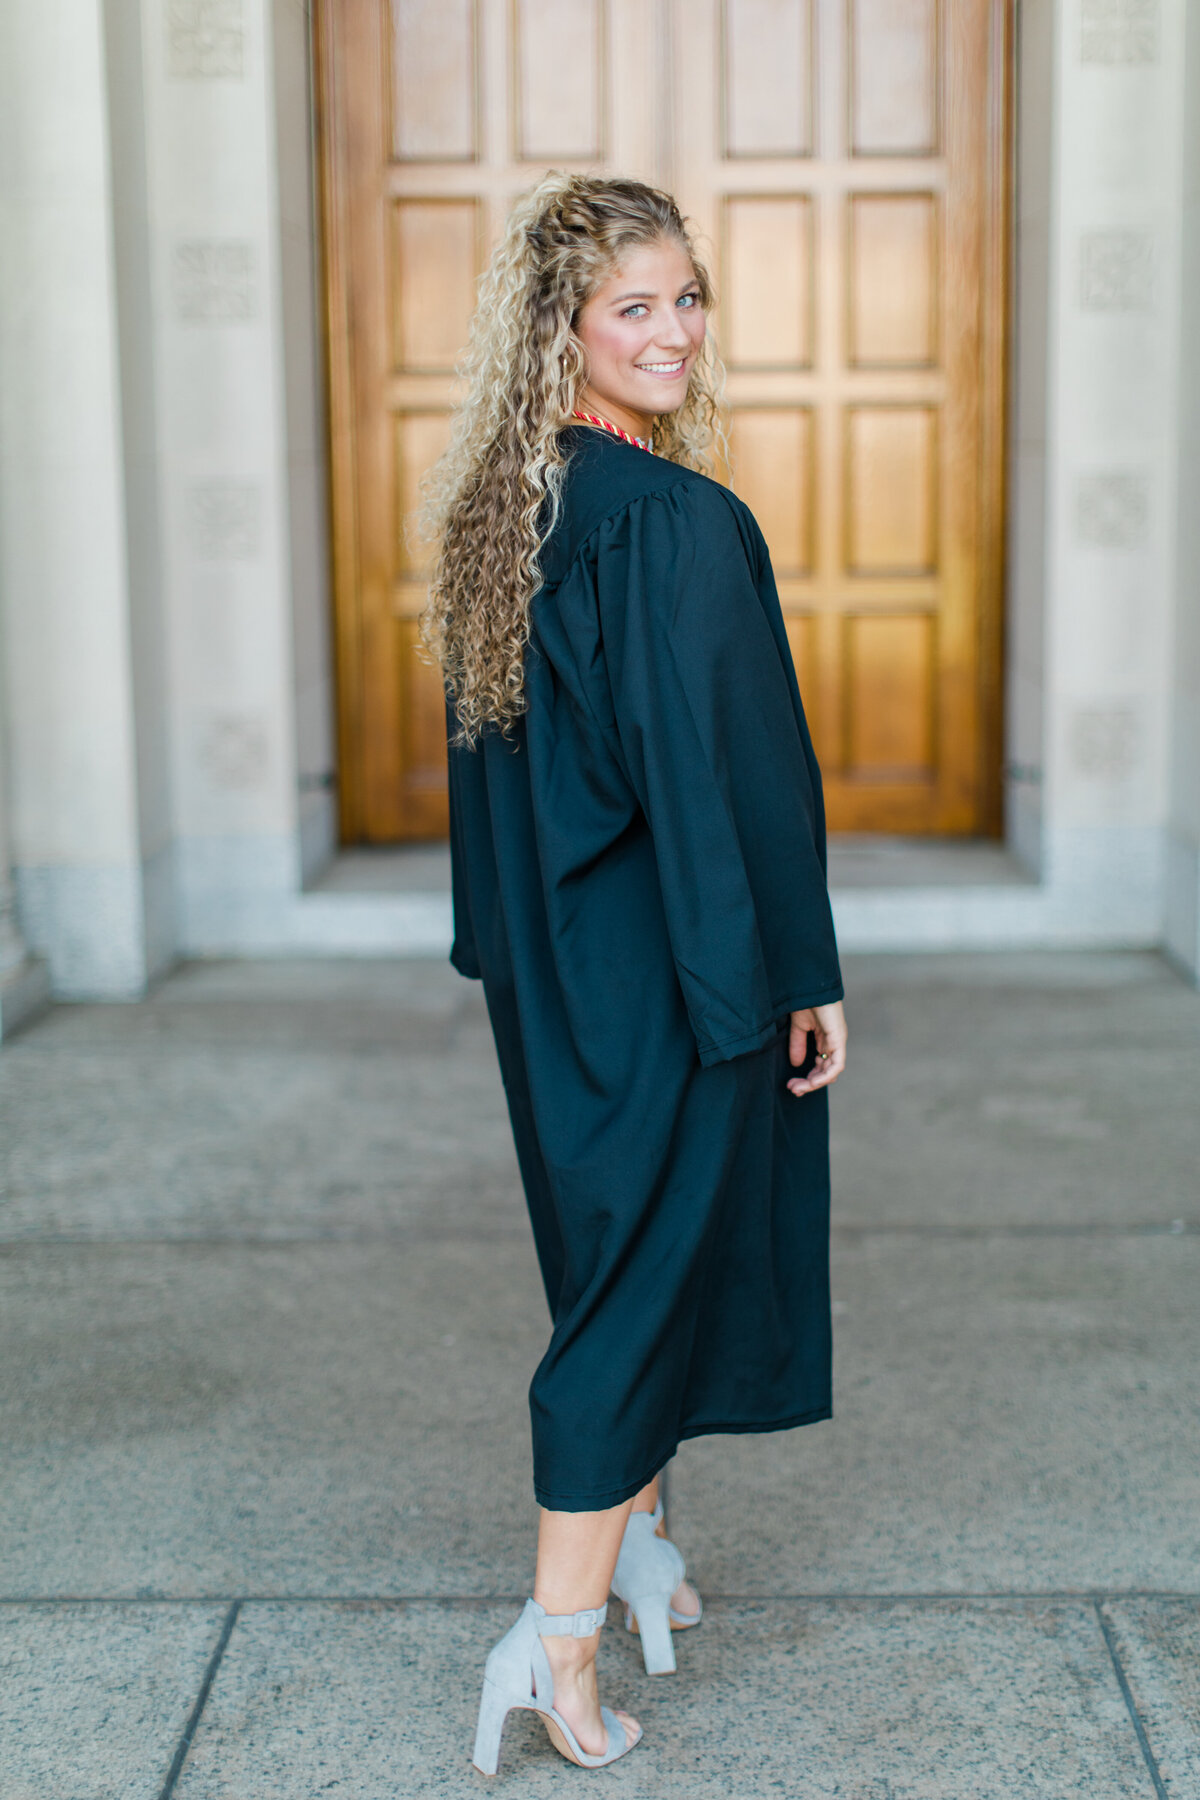 Catholic_University_CUA_Senior_Graduation_Session_2020_Angelika_Johns_Photography-4768